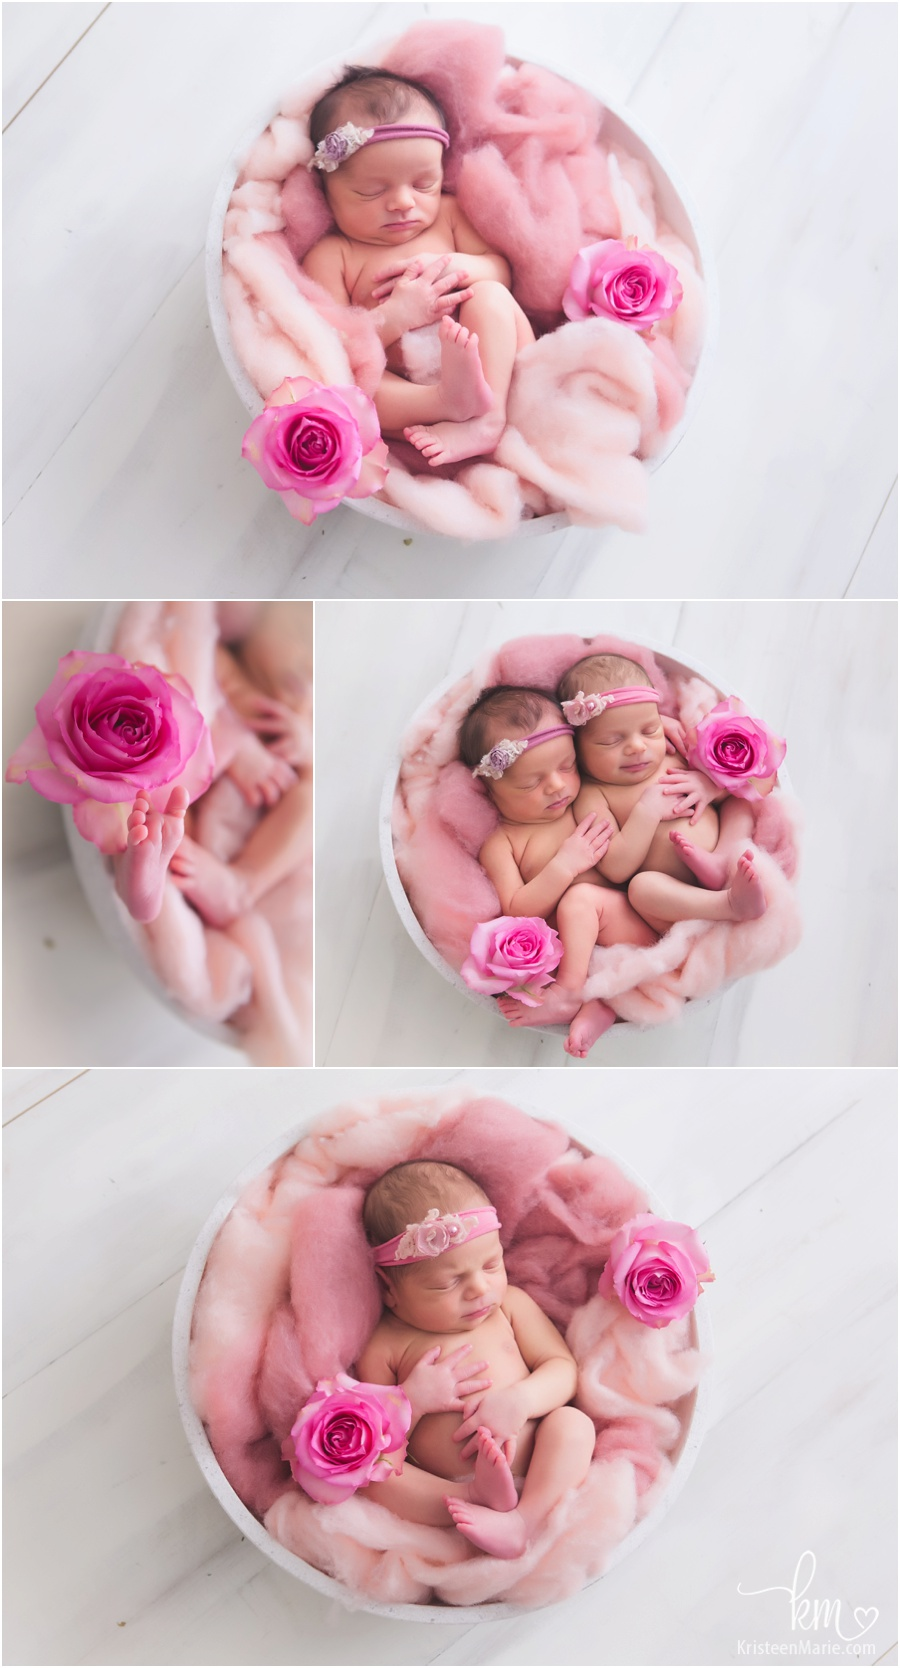 I Am In Love Girl Wallpaper Noblesville Twin Newborn Photographer Twins Leela Amp Saakshi